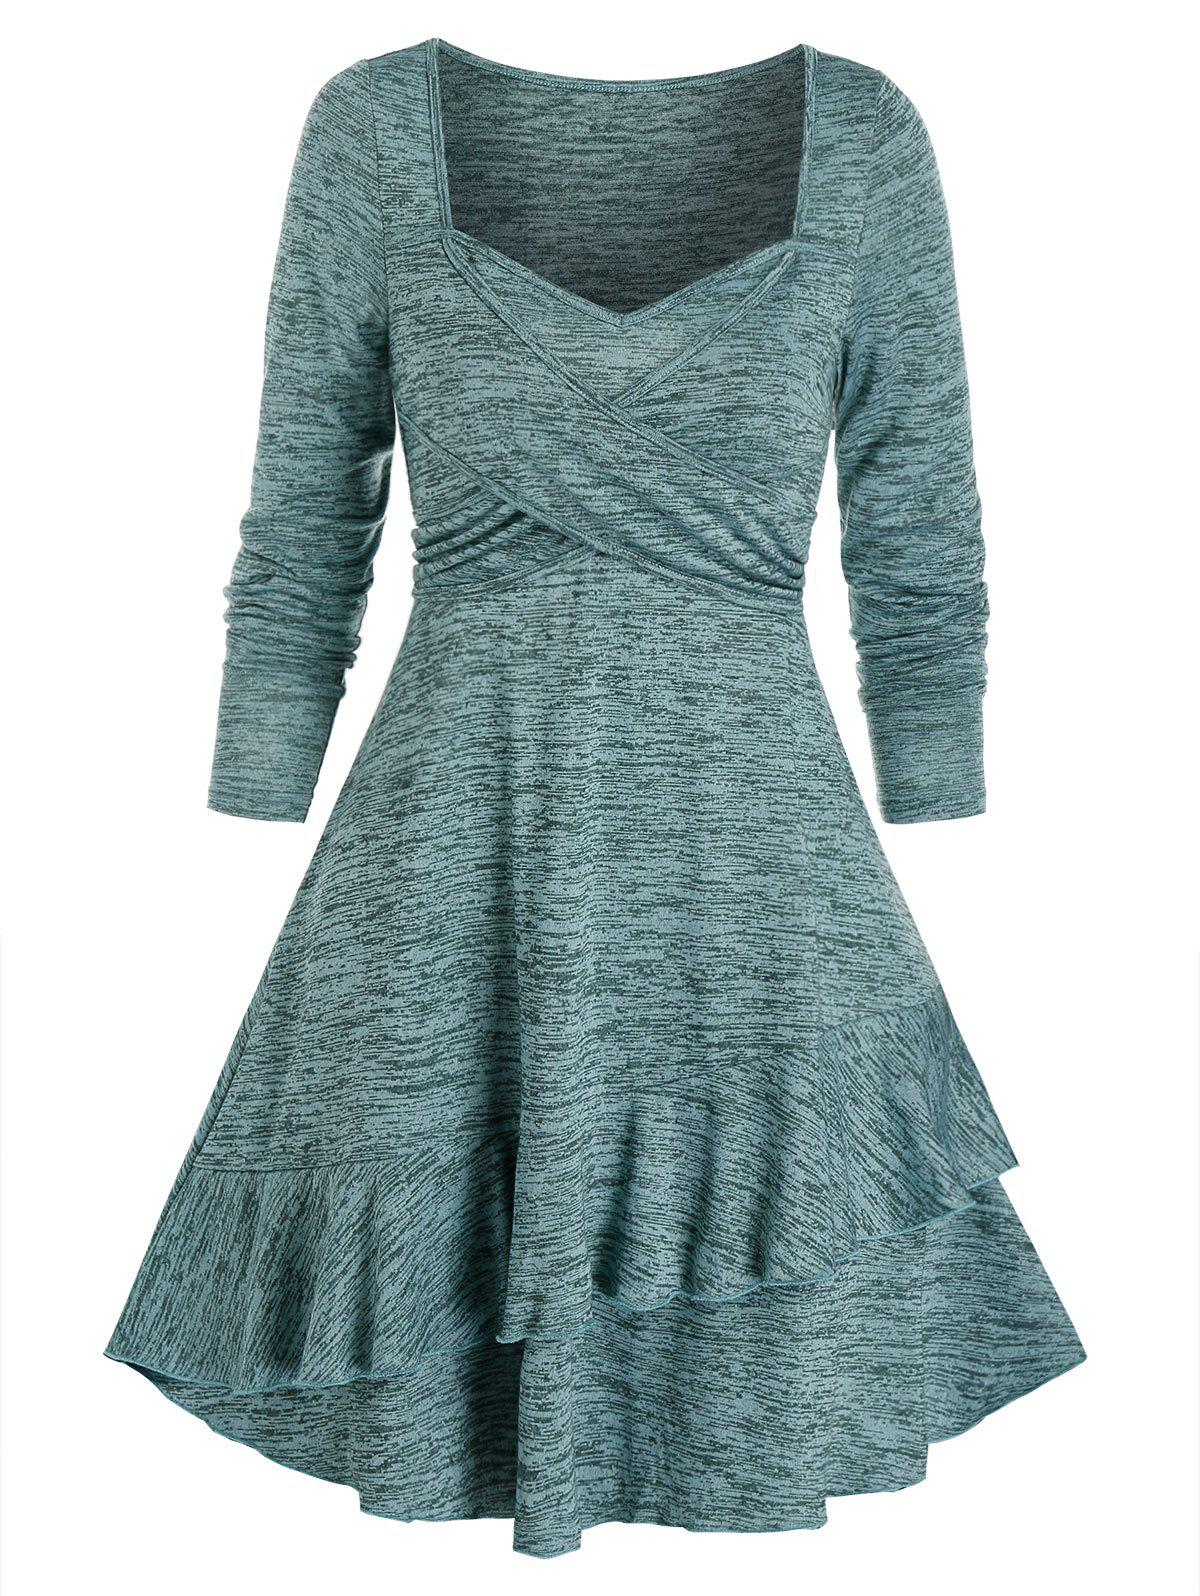 Space Dye Crisscross Knitted Layered A Line Dress - CYAN OPAQUE 3XL